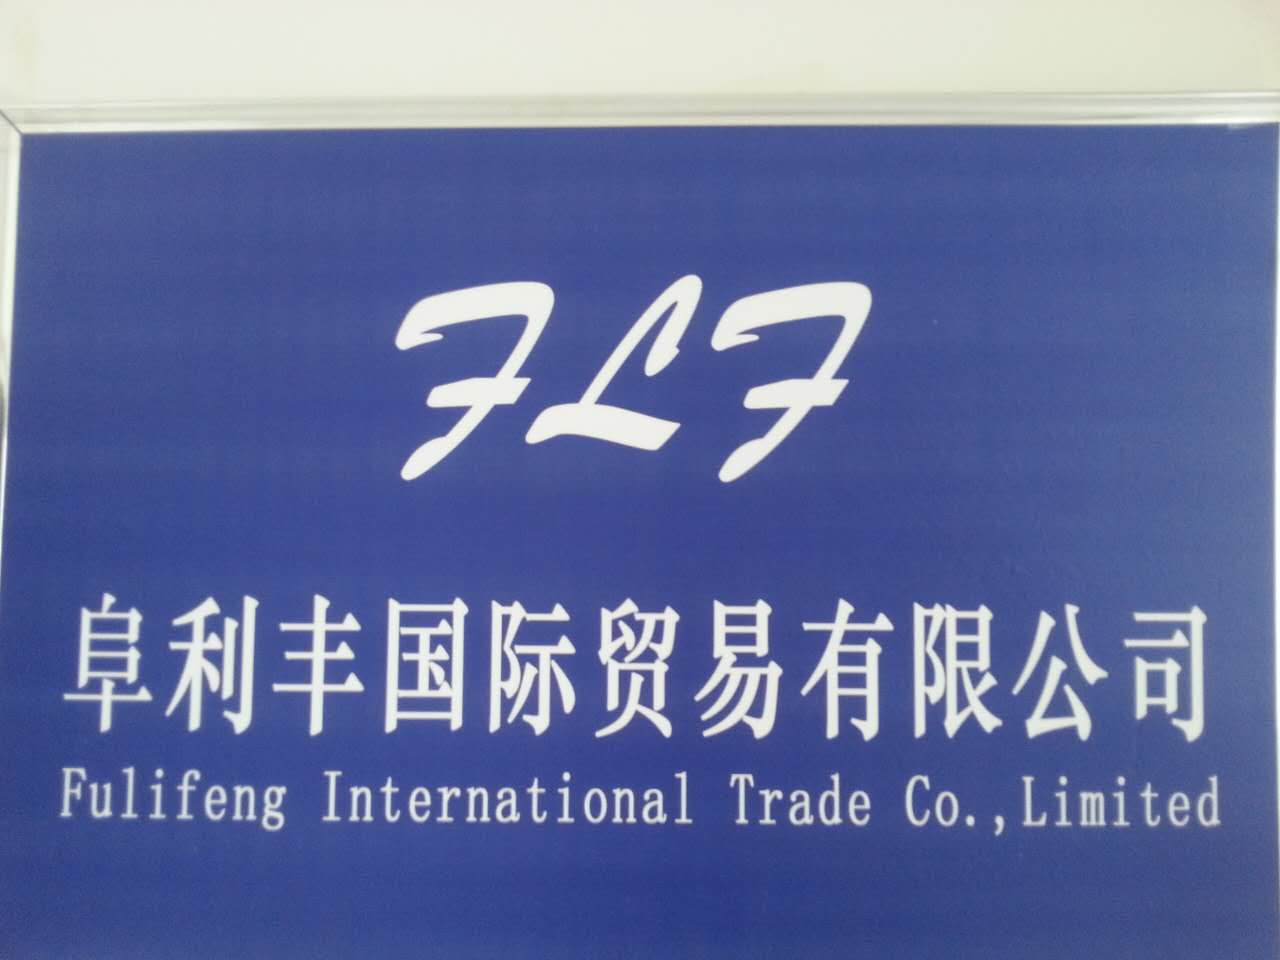 Fulifeng International Trade Co., Ltd.